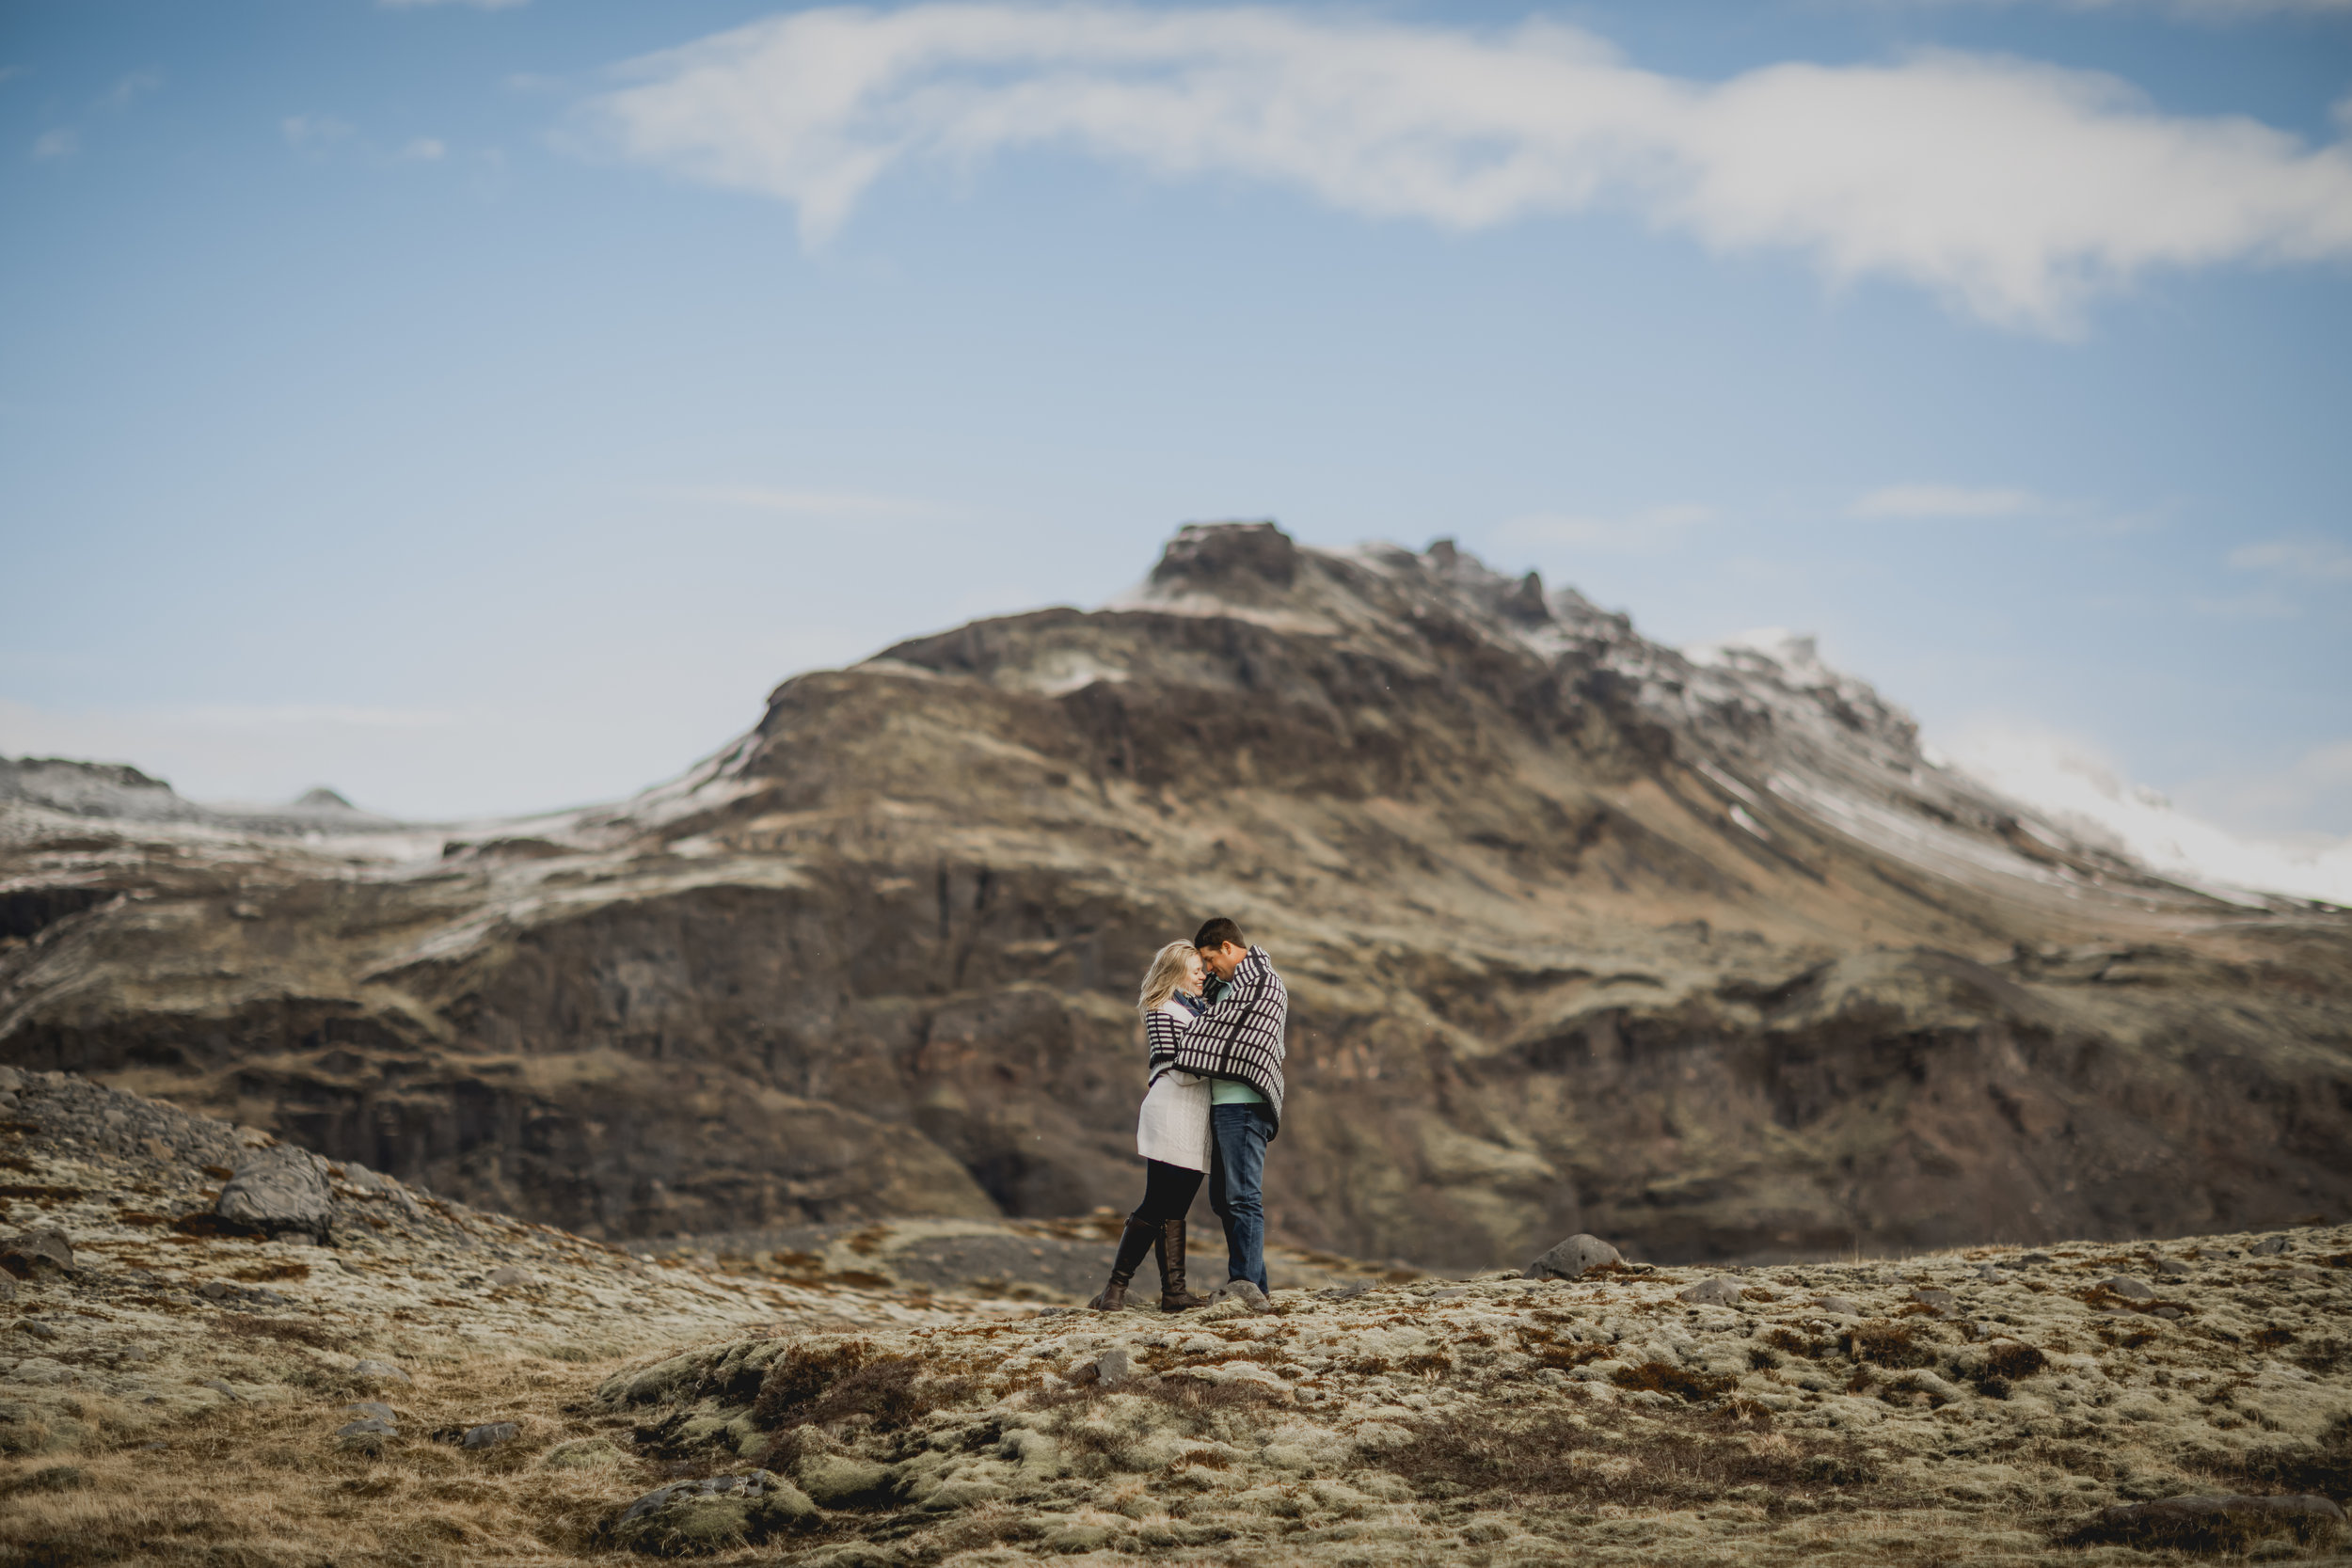 04.14.17 - Allison & Blake-Iceland Honeymoon-061.jpg